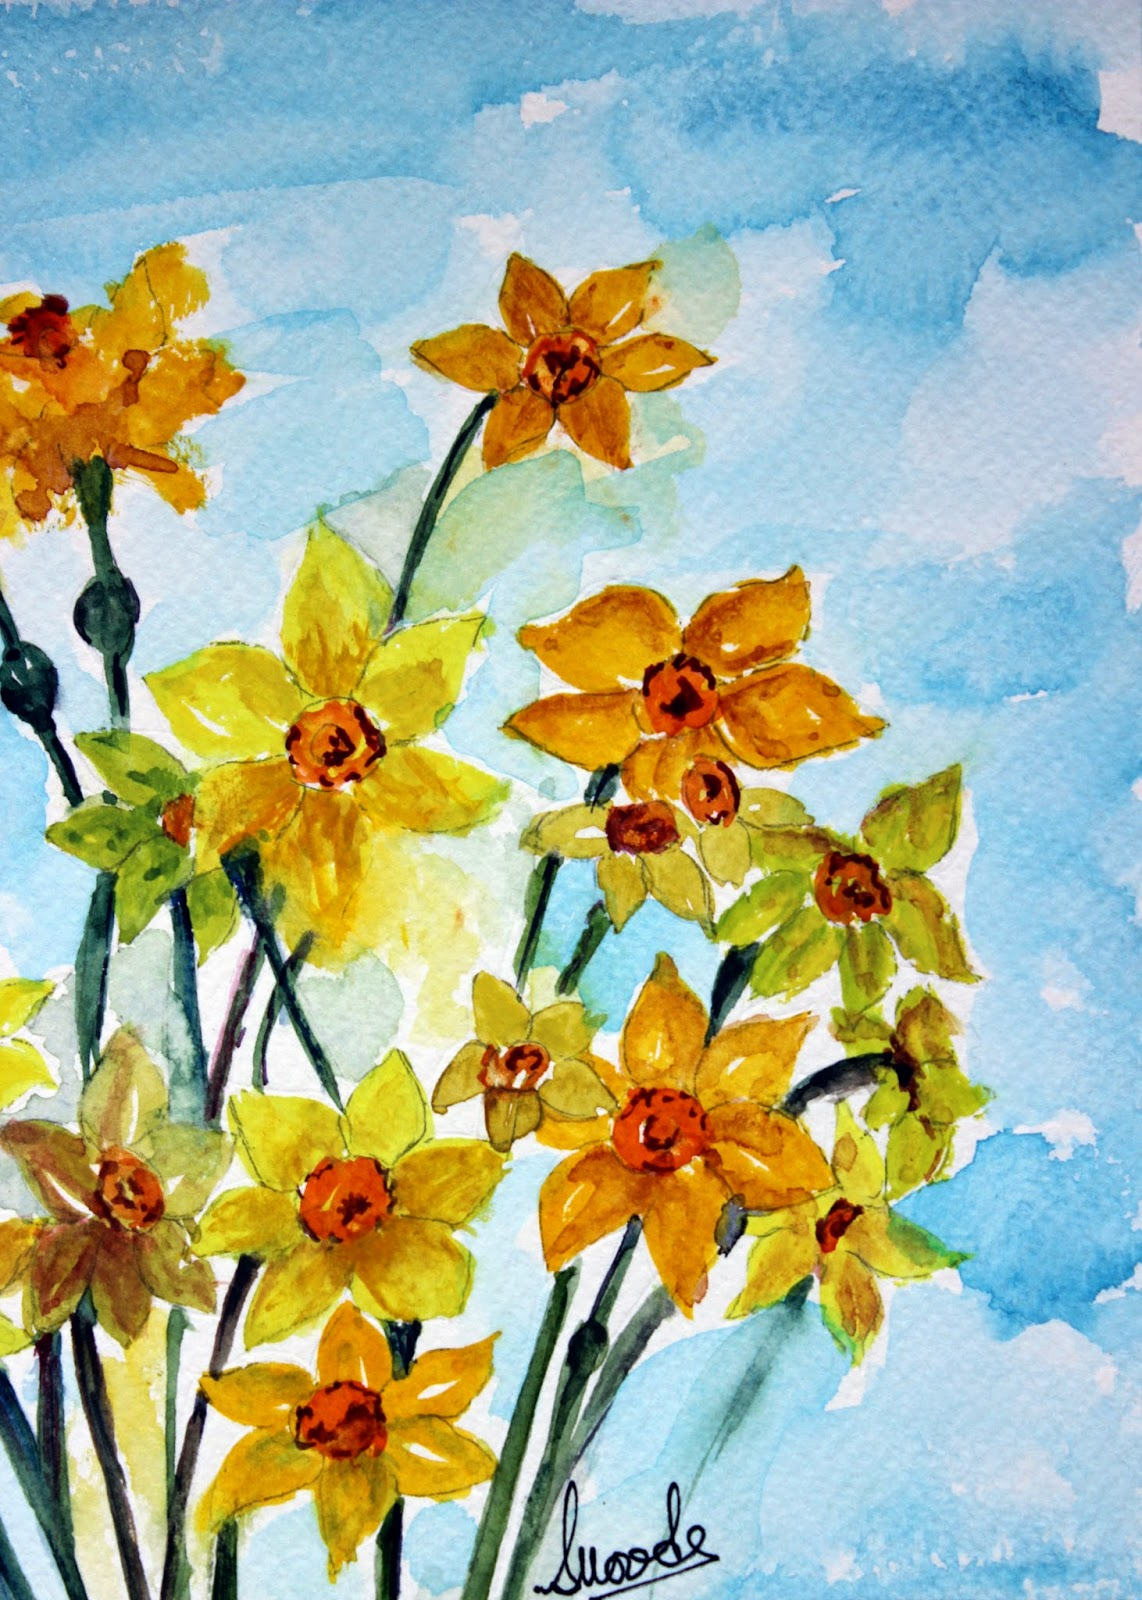 daffodil daffodils yellow flowers floral blooms narcissus bunch bouquet